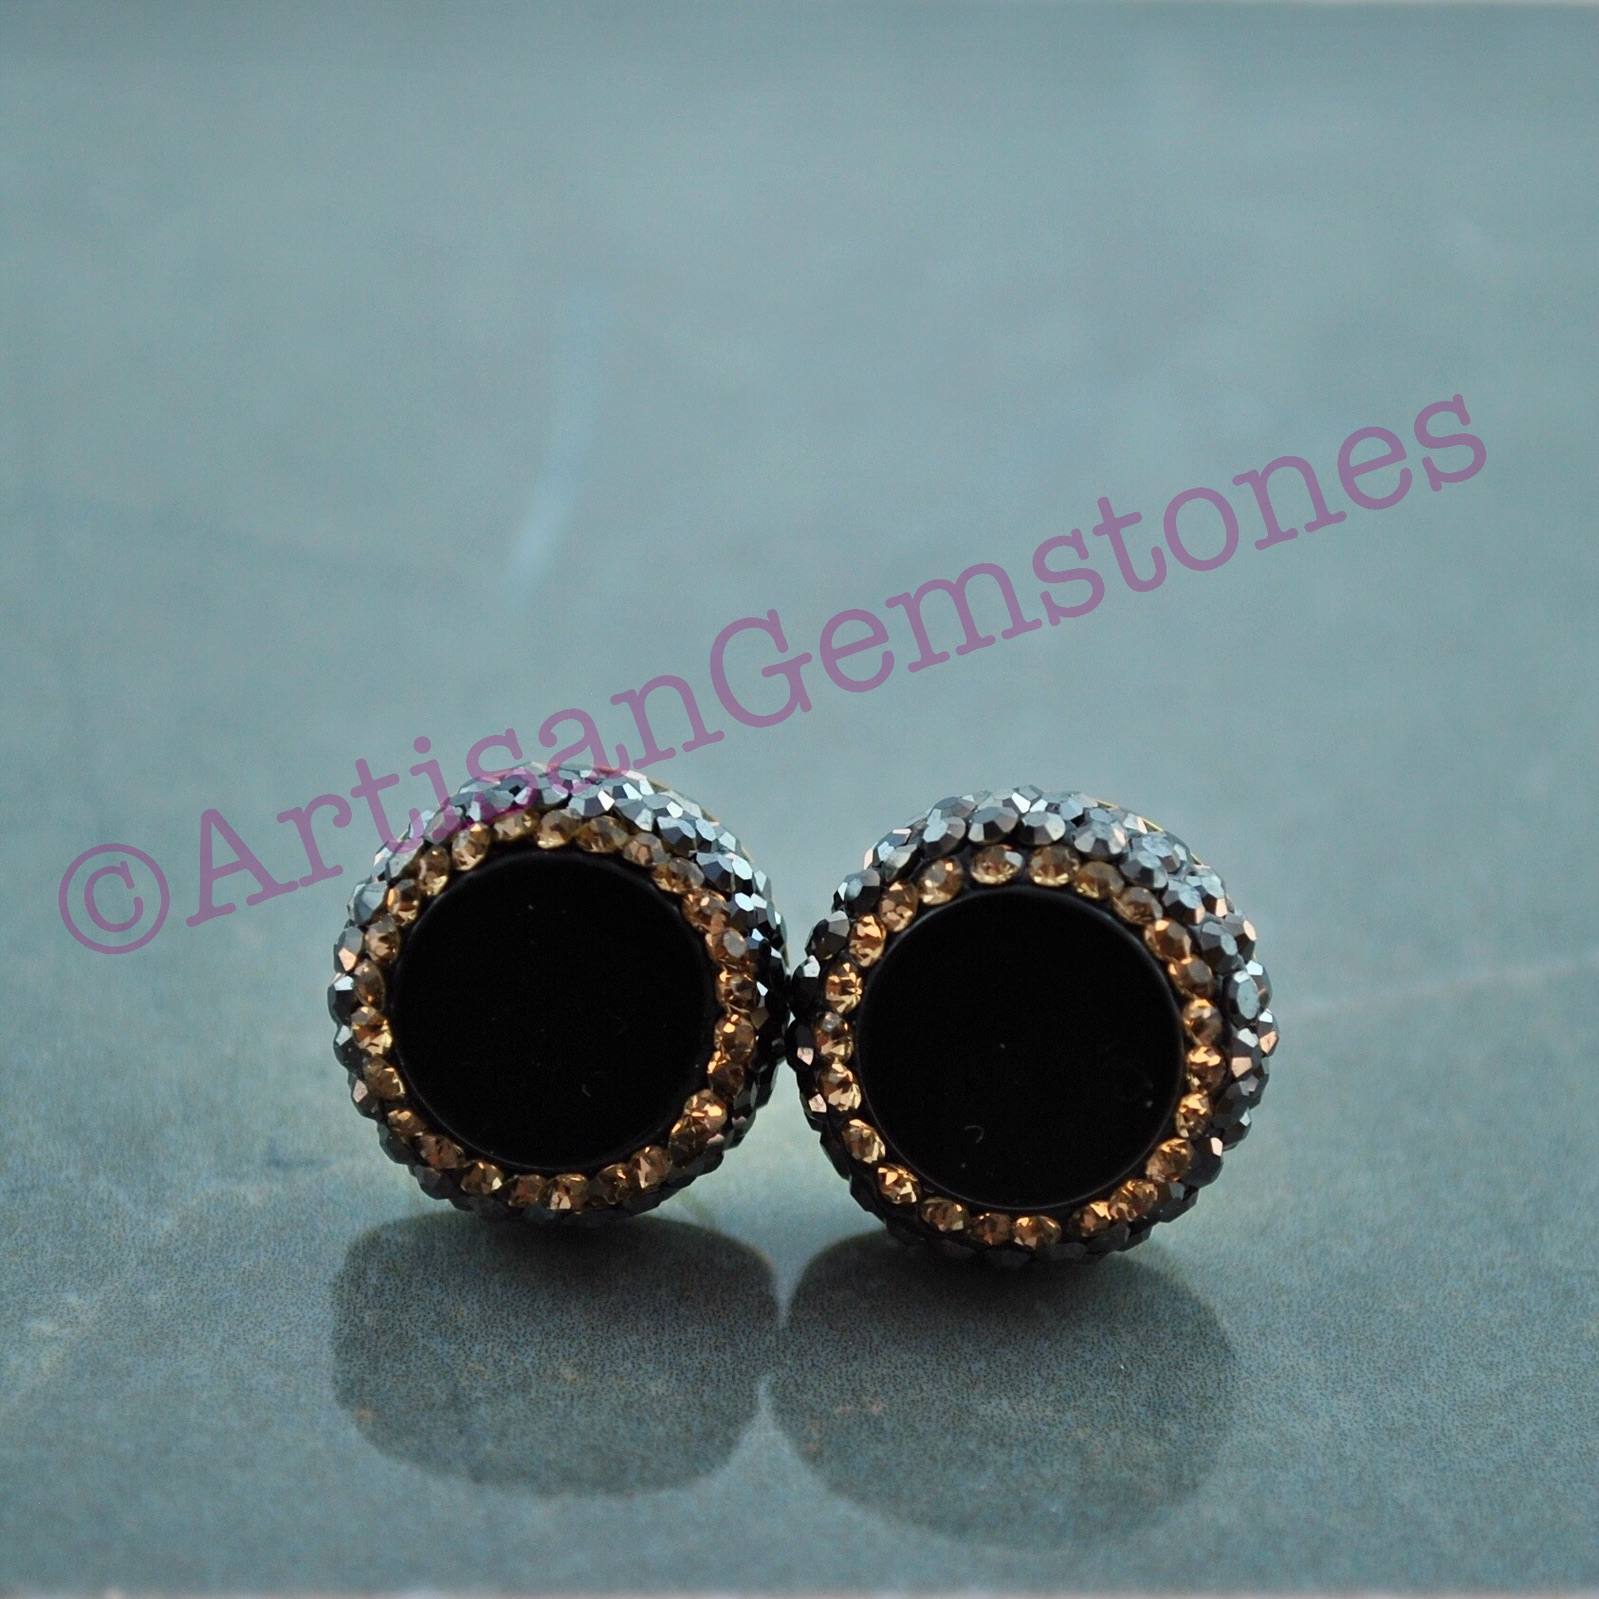 Black and Gold studs